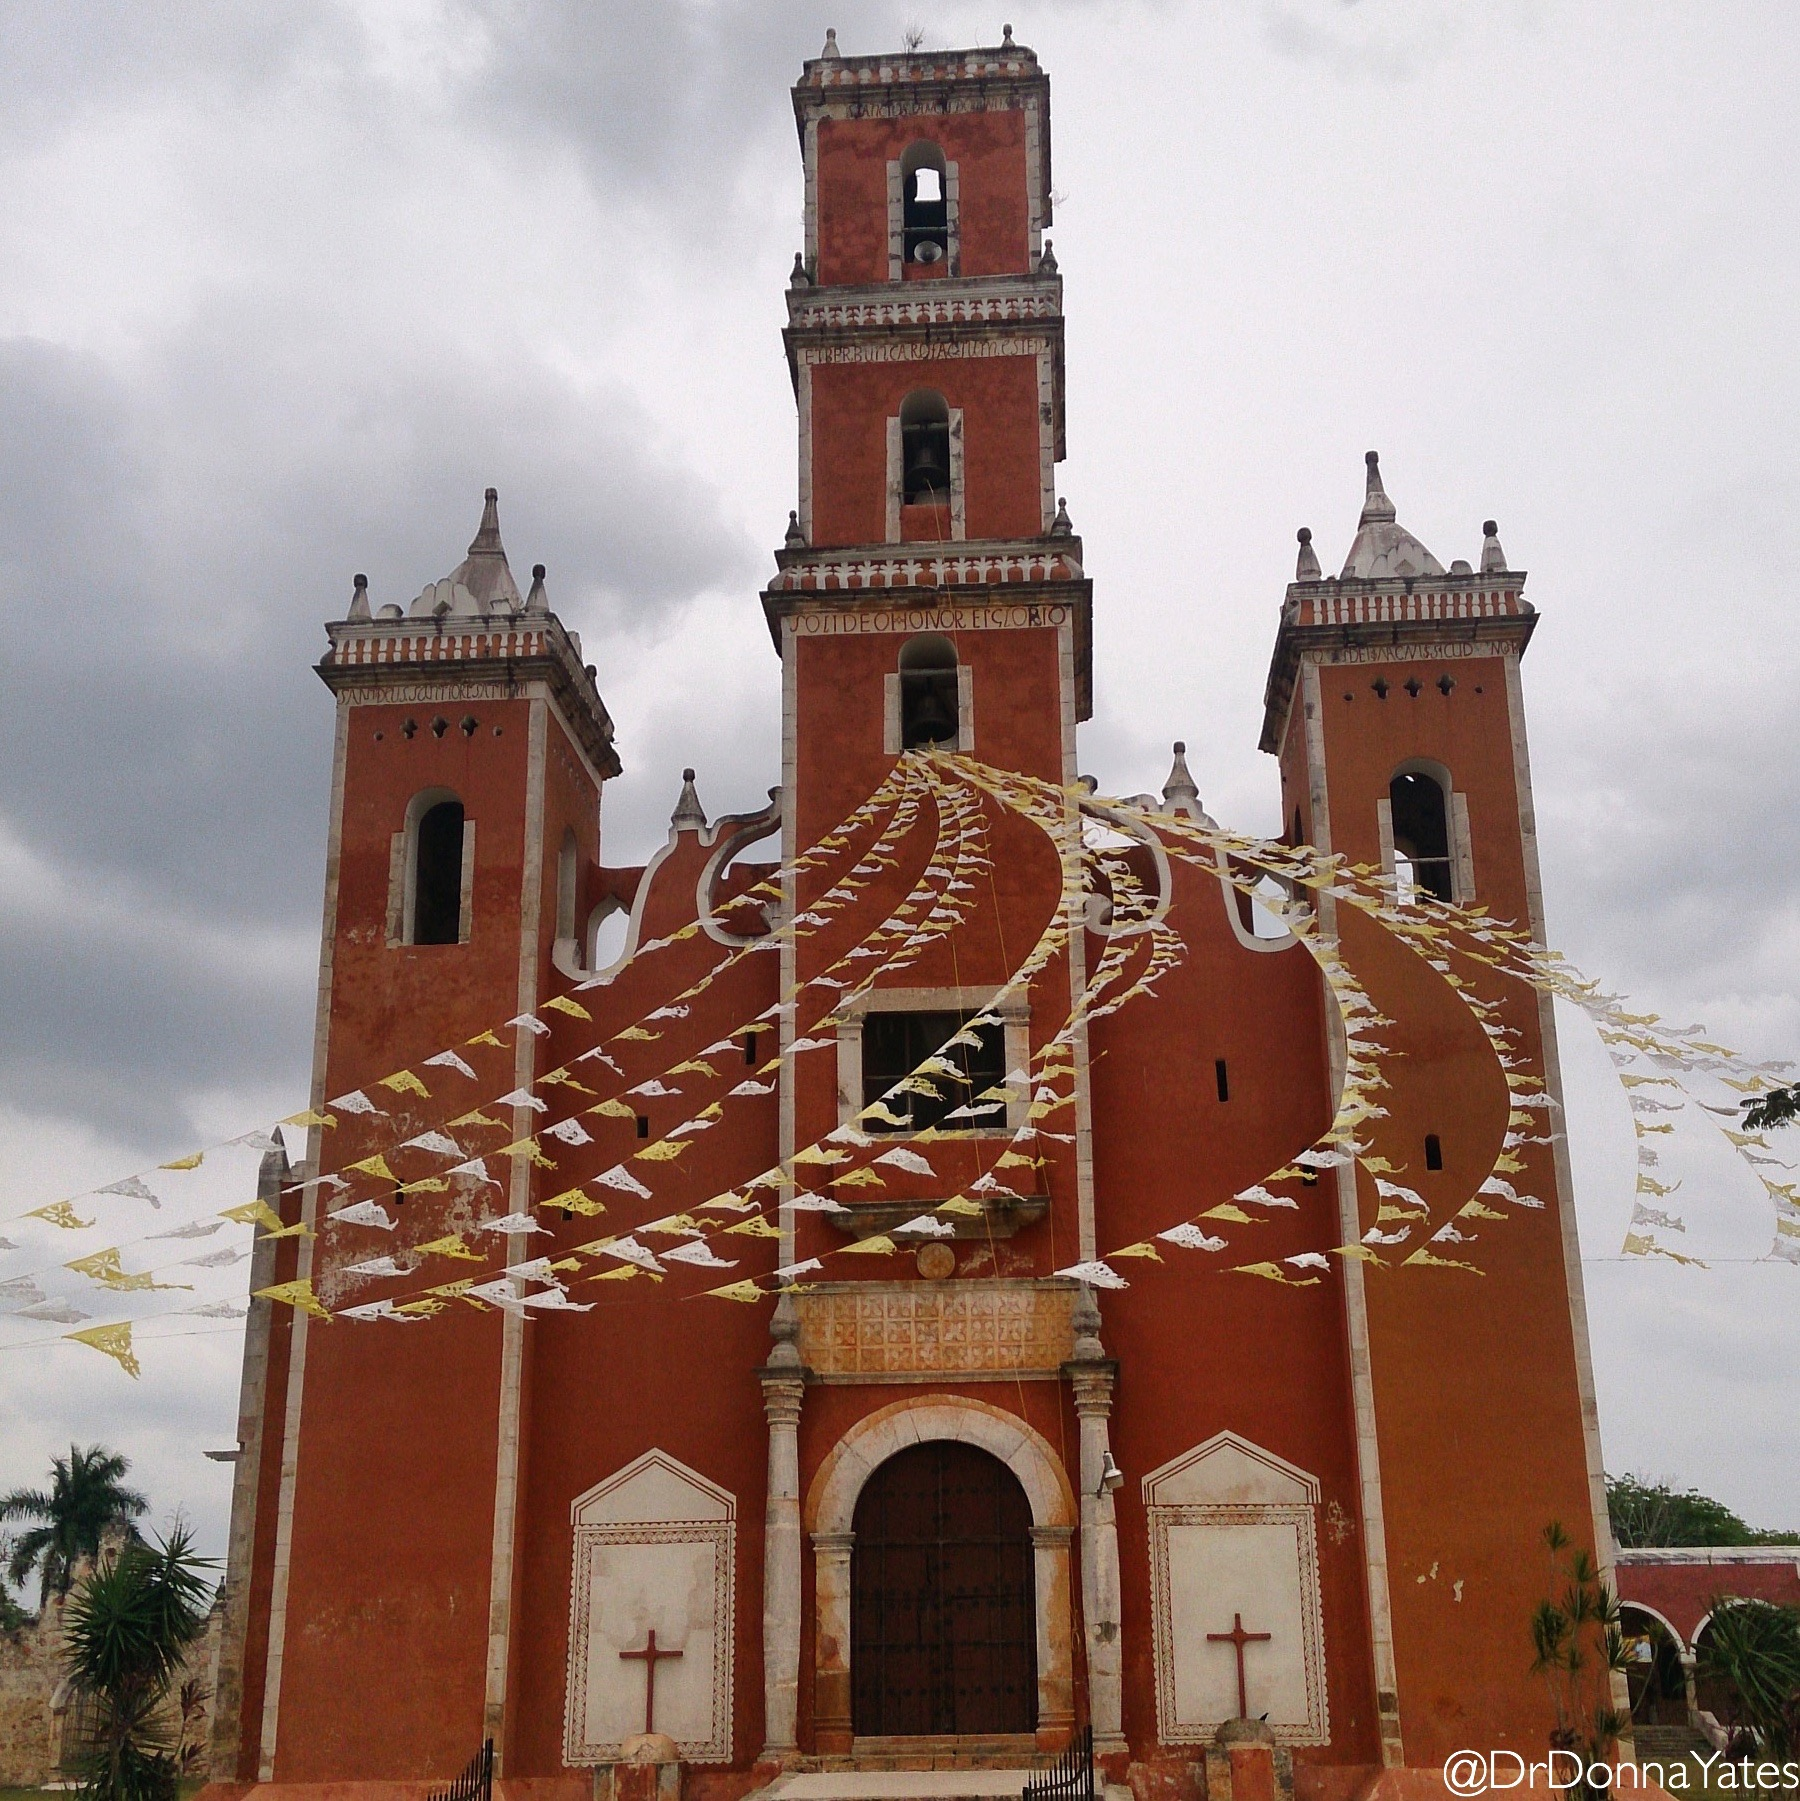 The bright beauty of Mexican village churches